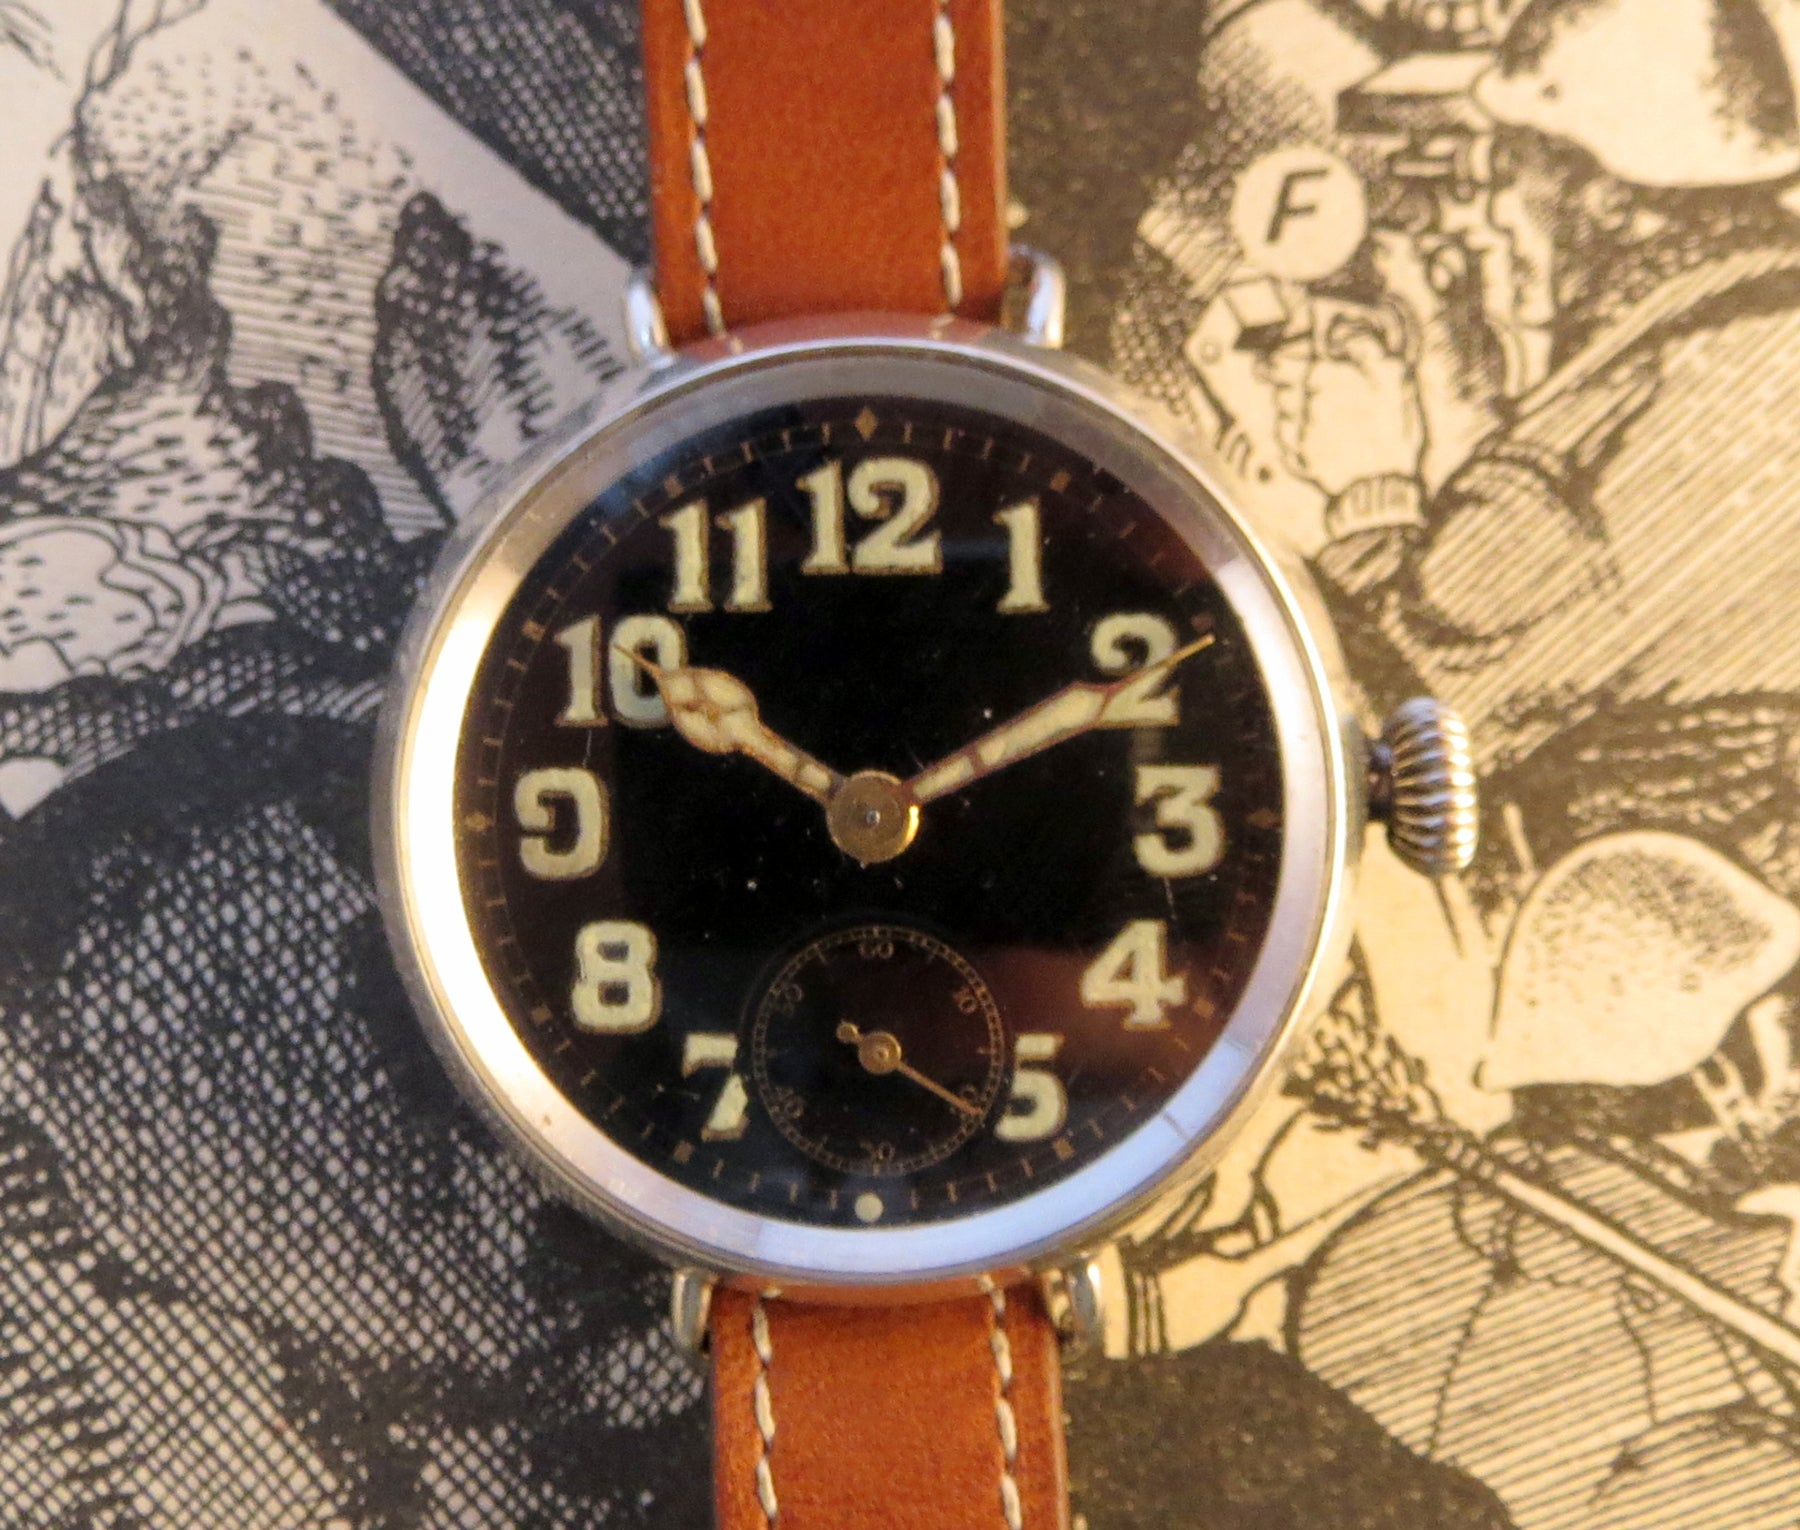 1918 Hallmarked silver trench watch with black dial, luminous hands and numerals.